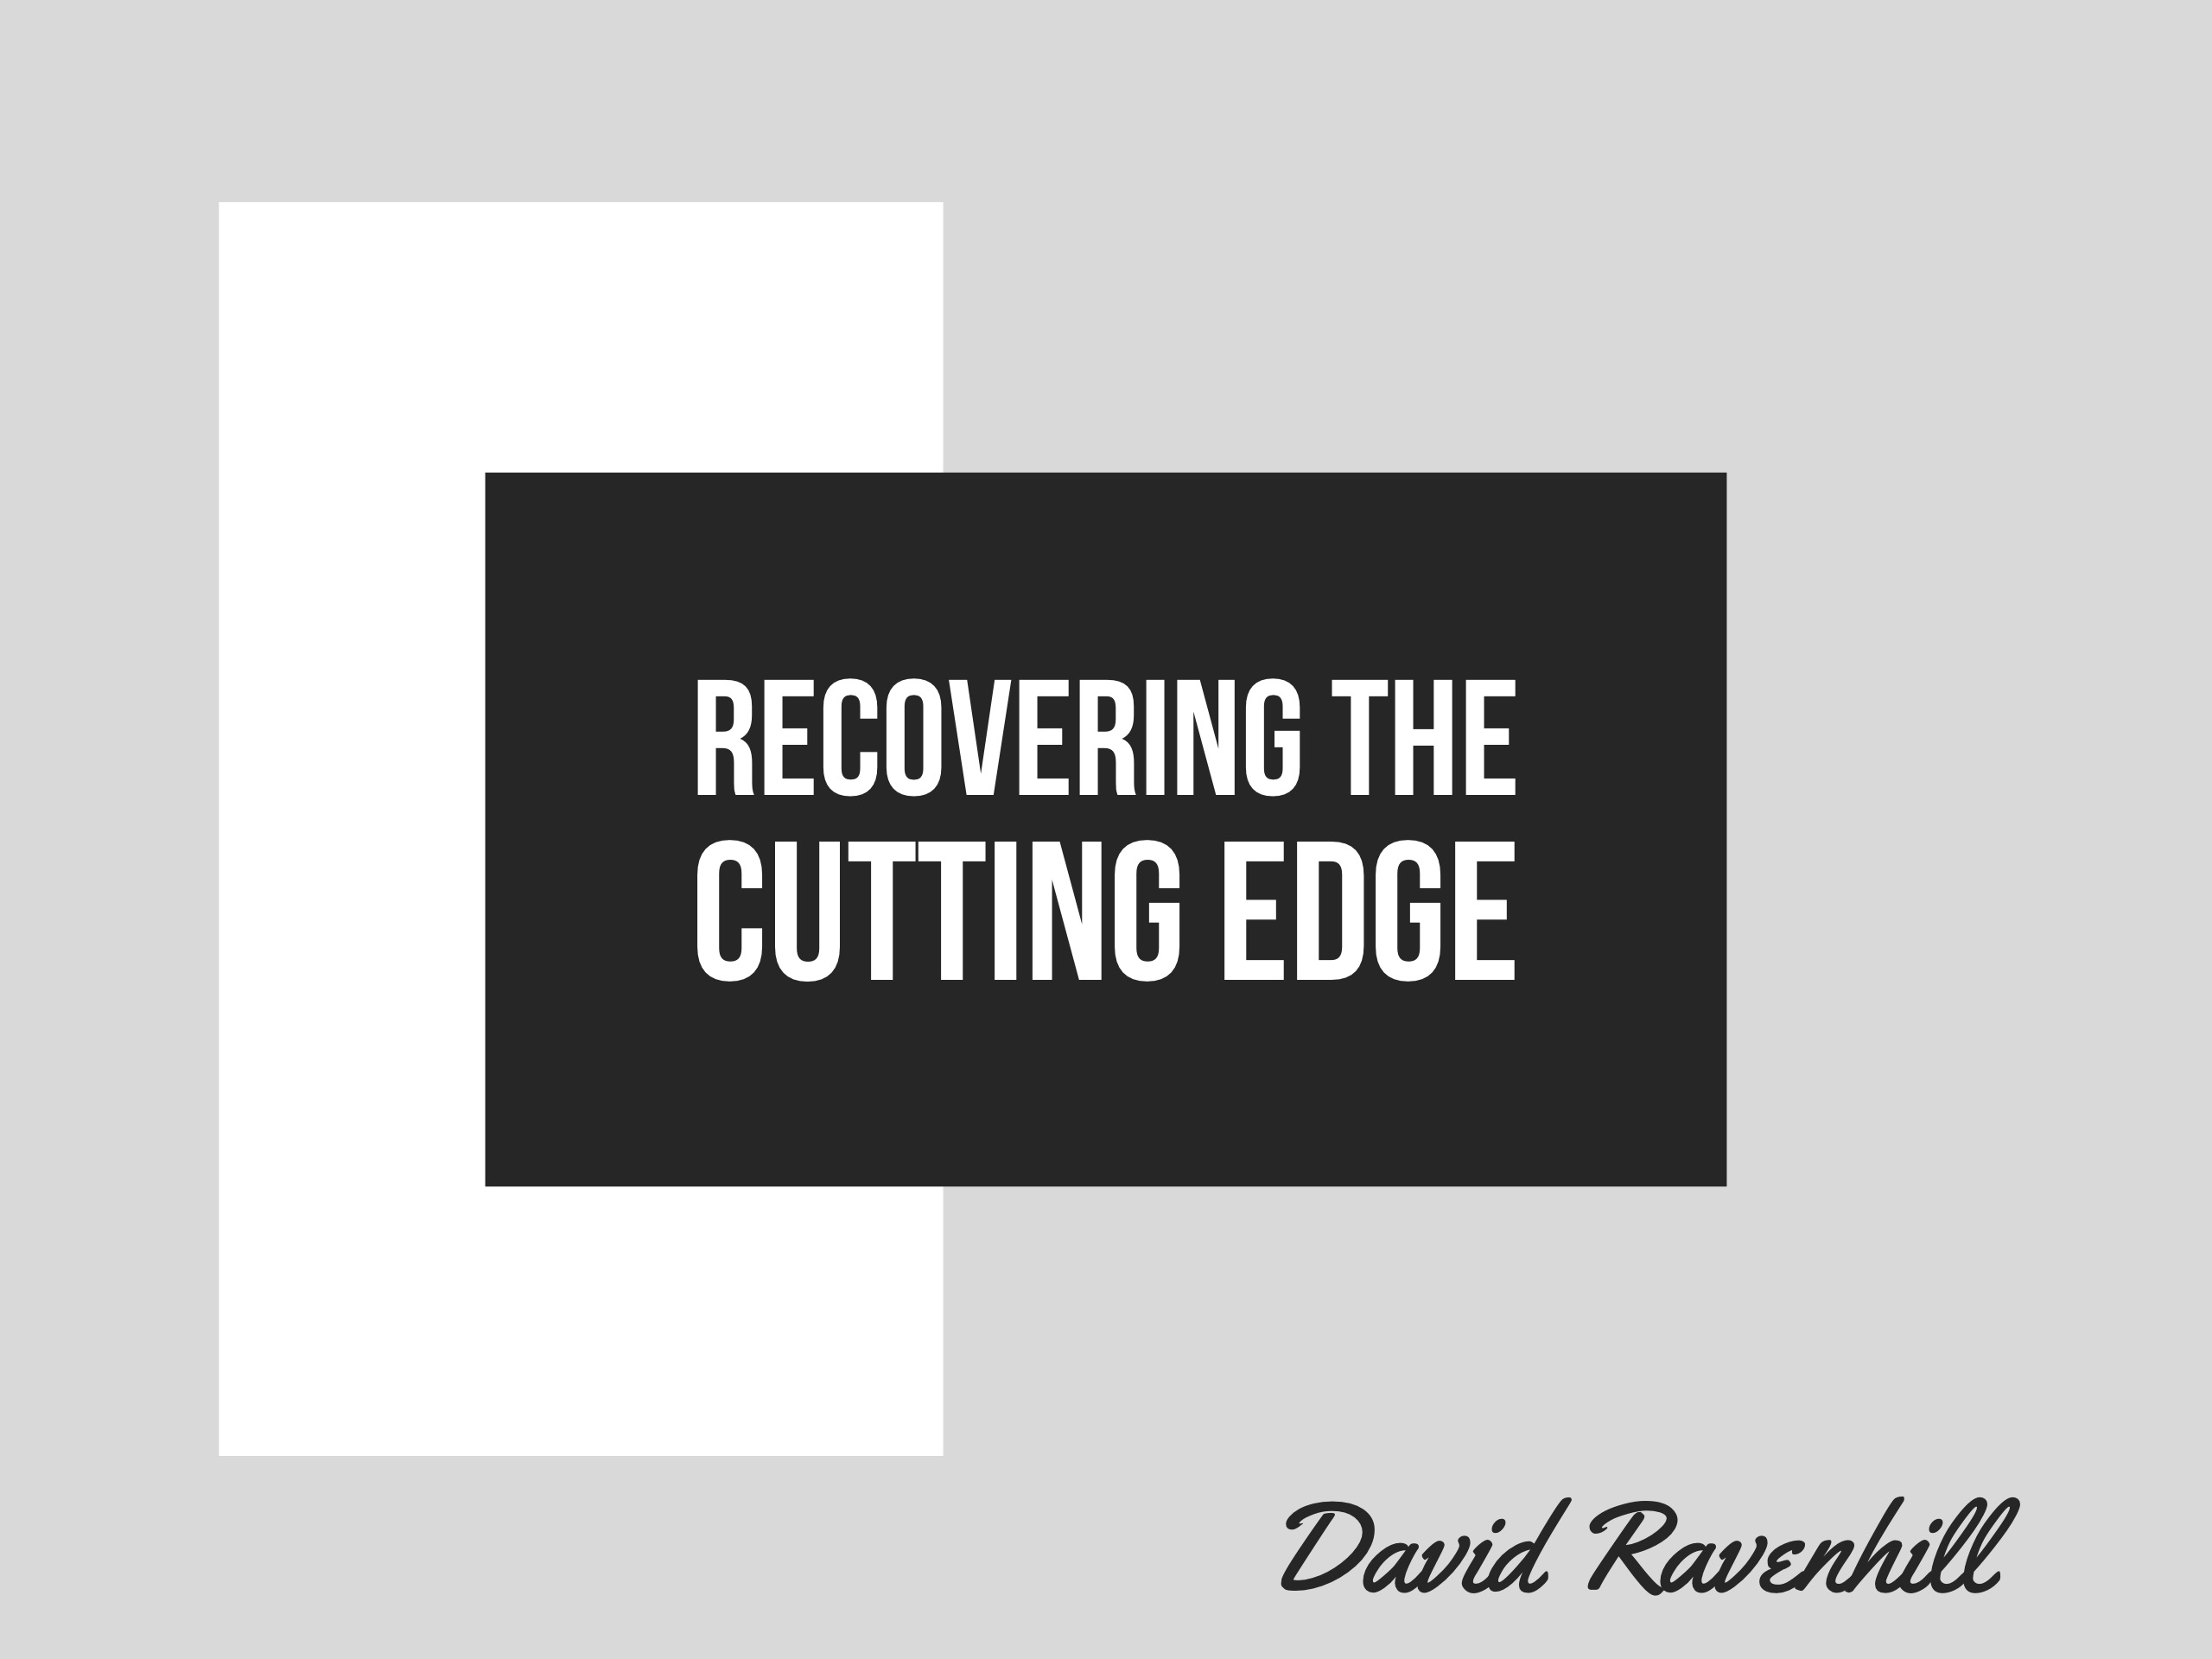 Recovering the Cutting Edge